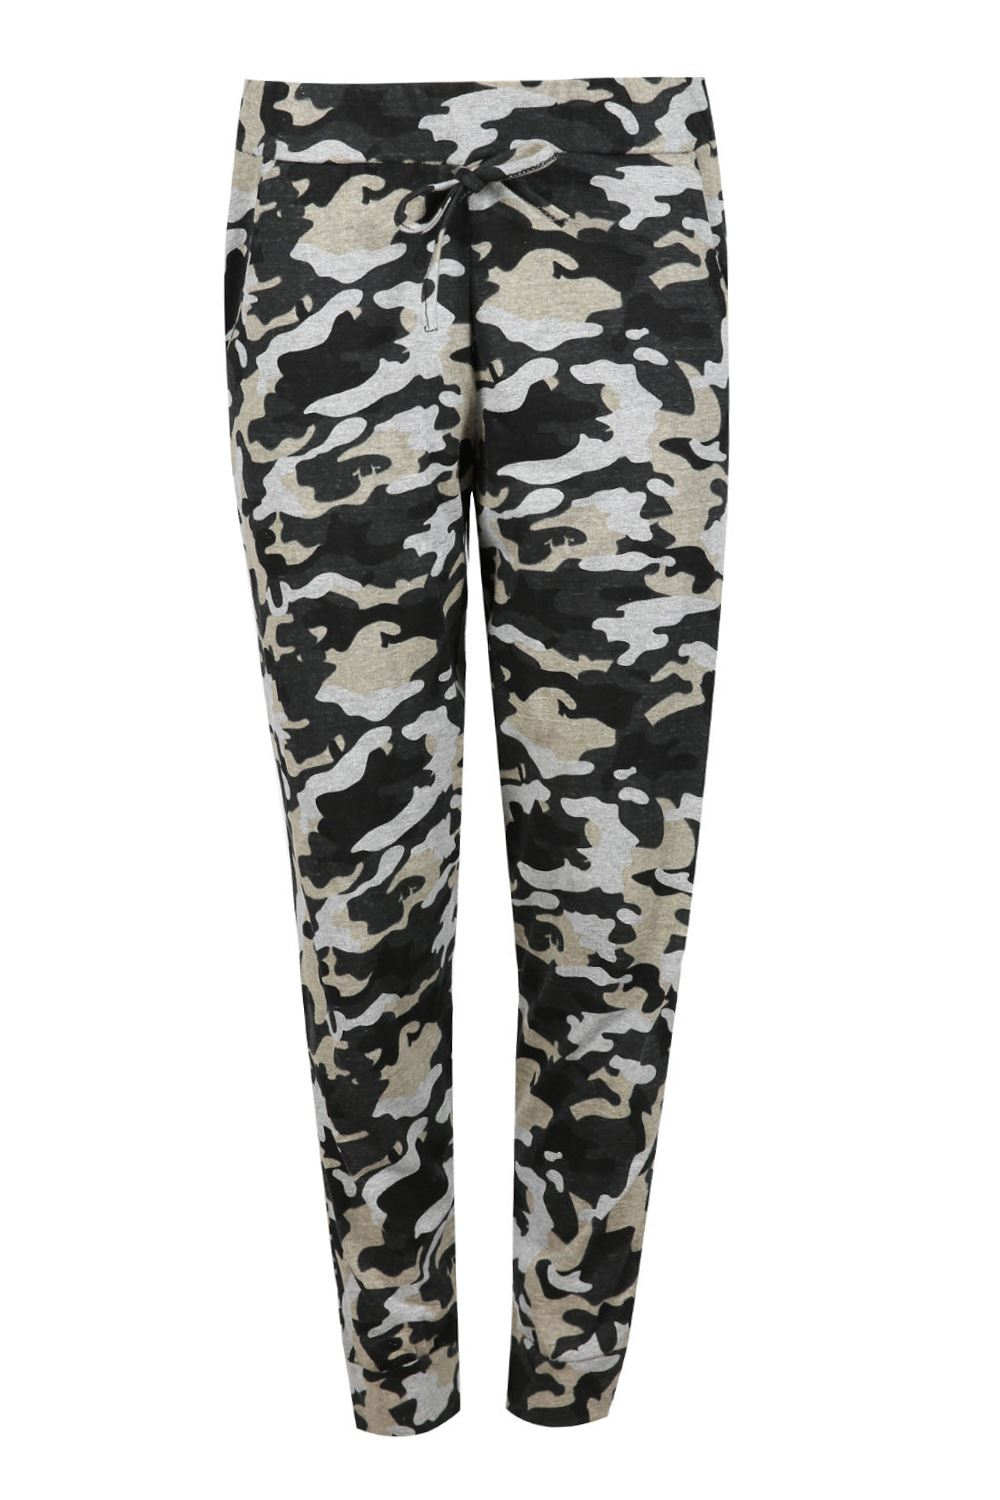 Excellent Womens Regular Fit Baggy Camouflage Yoga Sports Jogging Gym Sweatpants Trousers | EBay